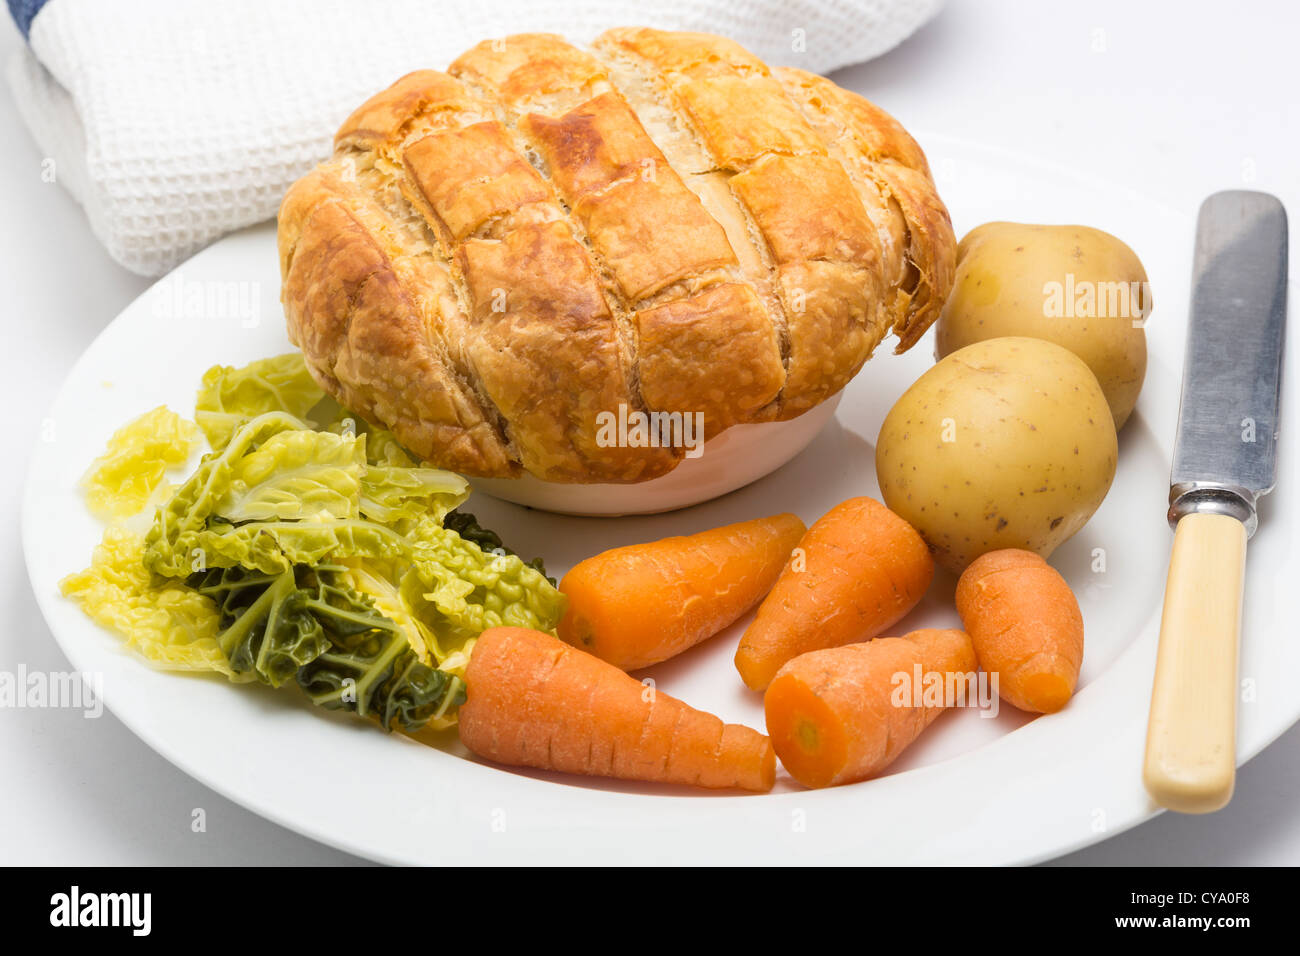 Steak and Ale Pie  Carrots, Cabbage and Potatoes - Stock Image